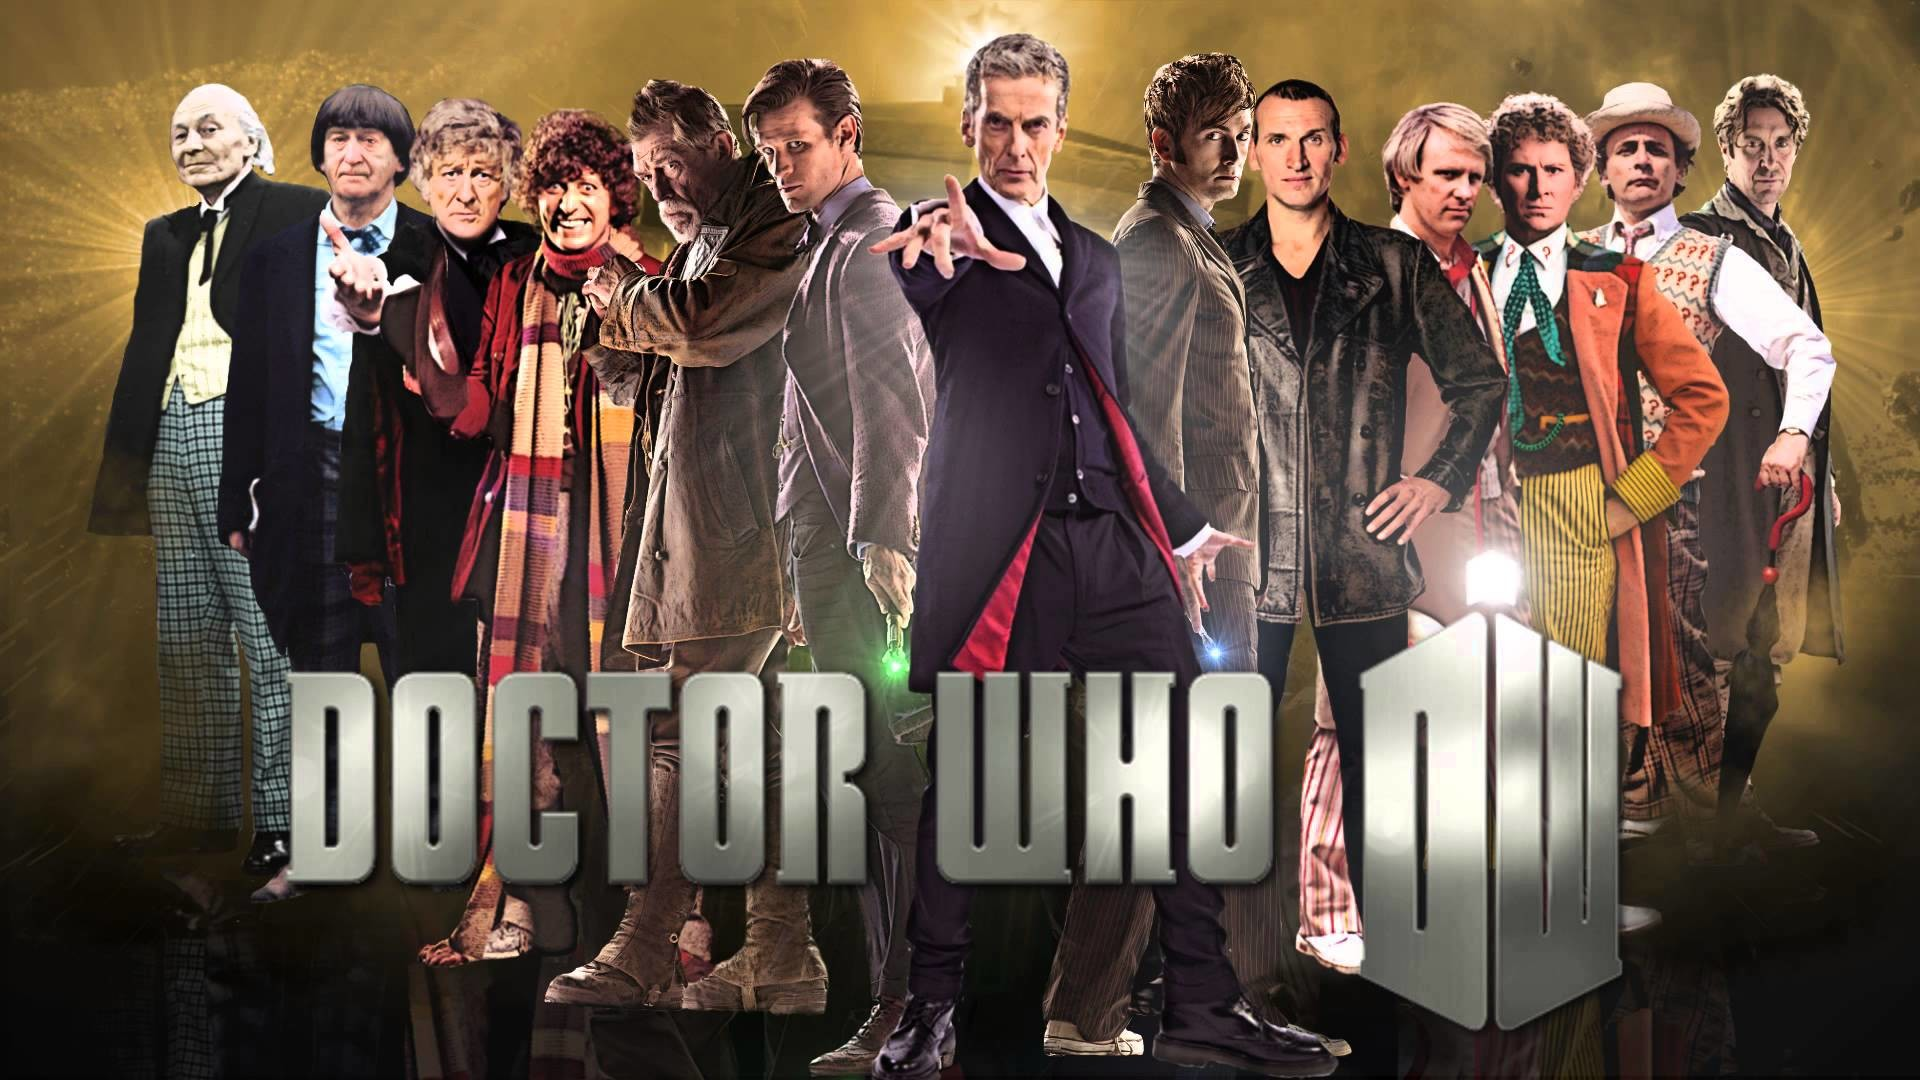 Doctor Who All Doctors Wallpaper (68+ images) | 1920 x 1080 jpeg 338kB